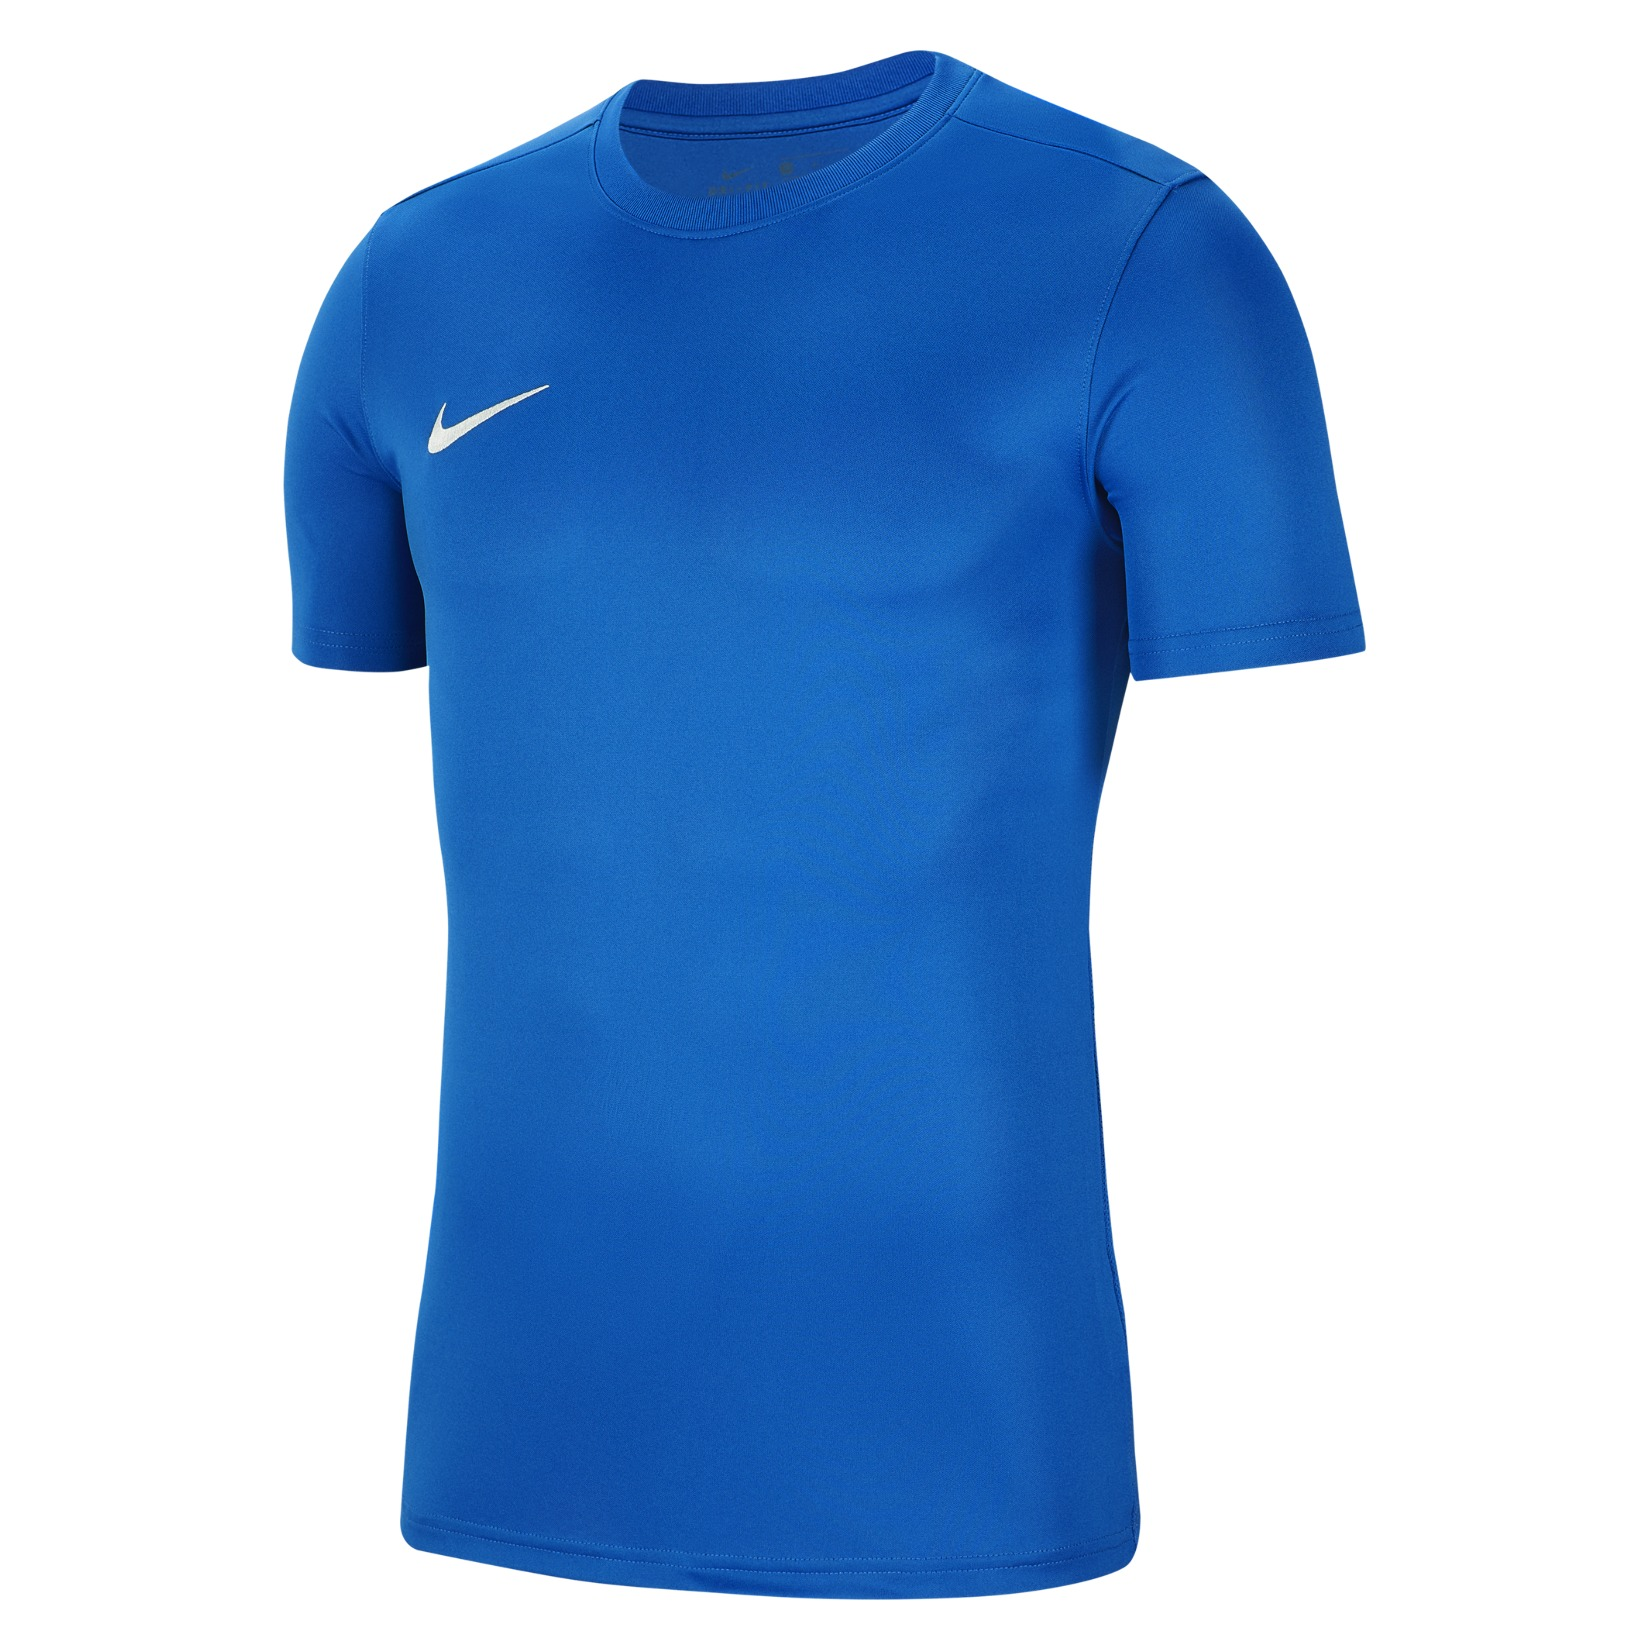 Nike Park VII Dri-FIT Short Sleeve Shirt Royal Blue-White